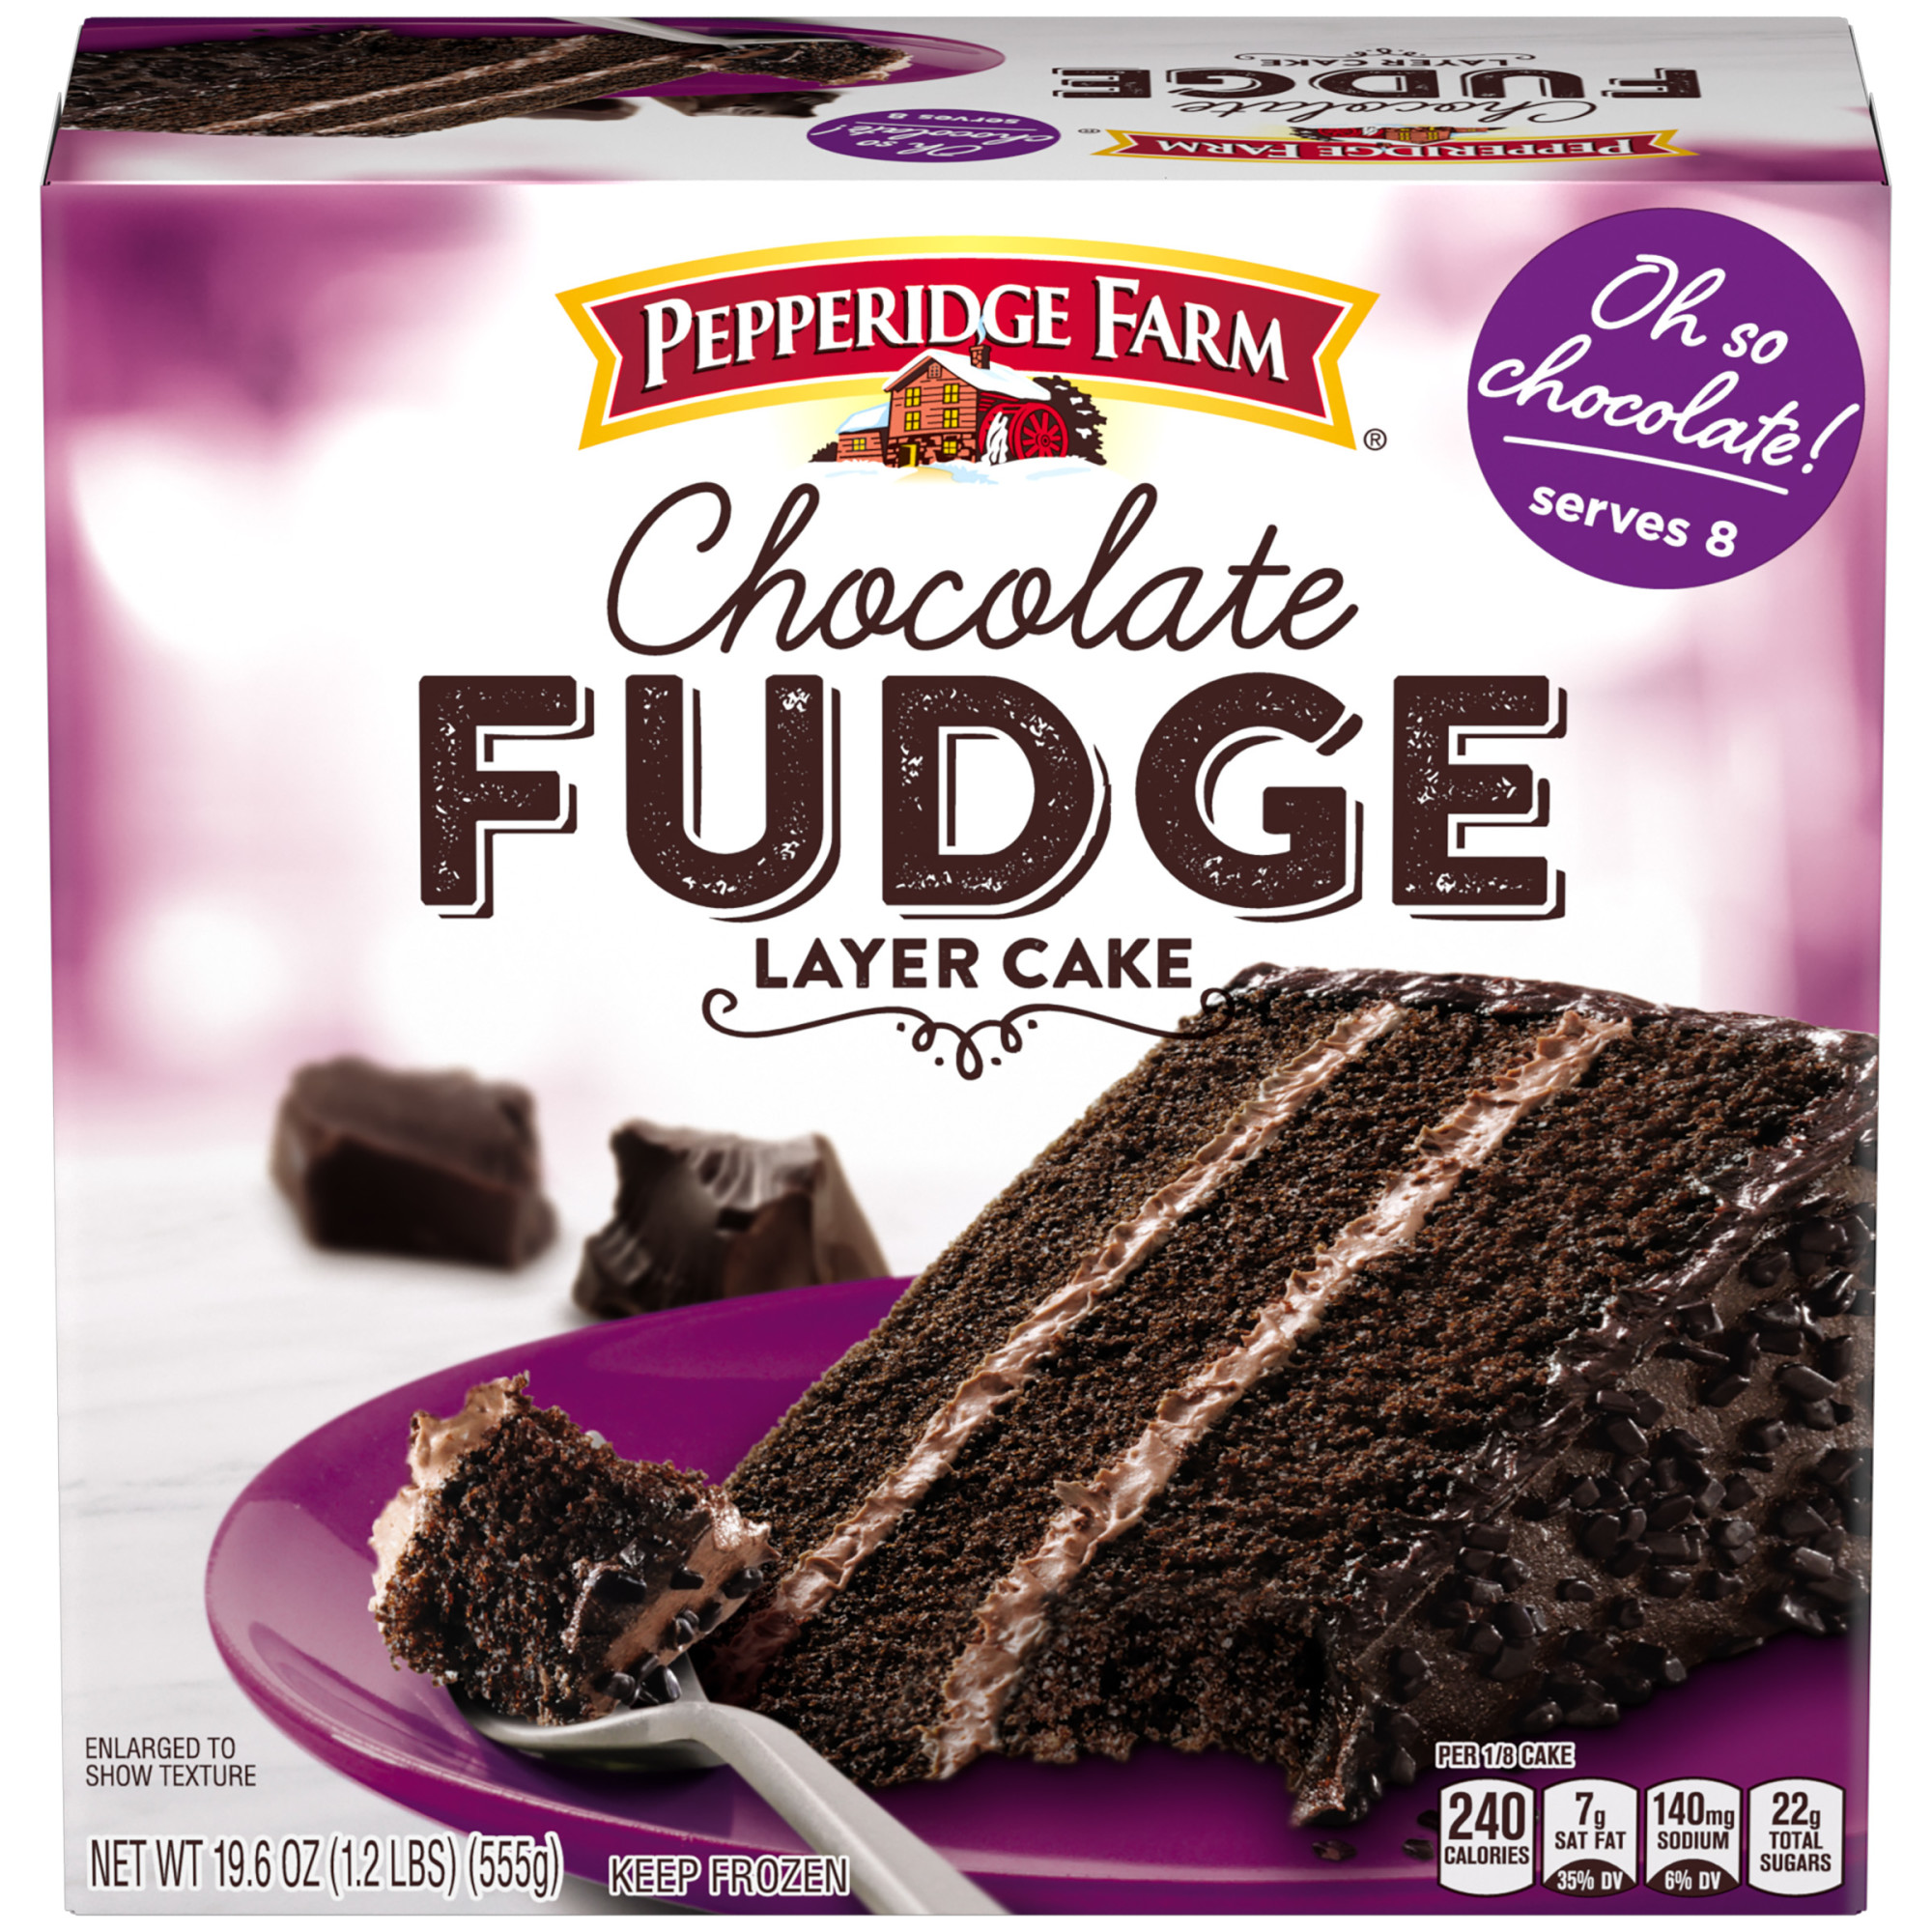 Pepperidge Farm Frozen Chocolate Fudge Layer Cake 19 6 Oz Box Walmart Com Walmart Com